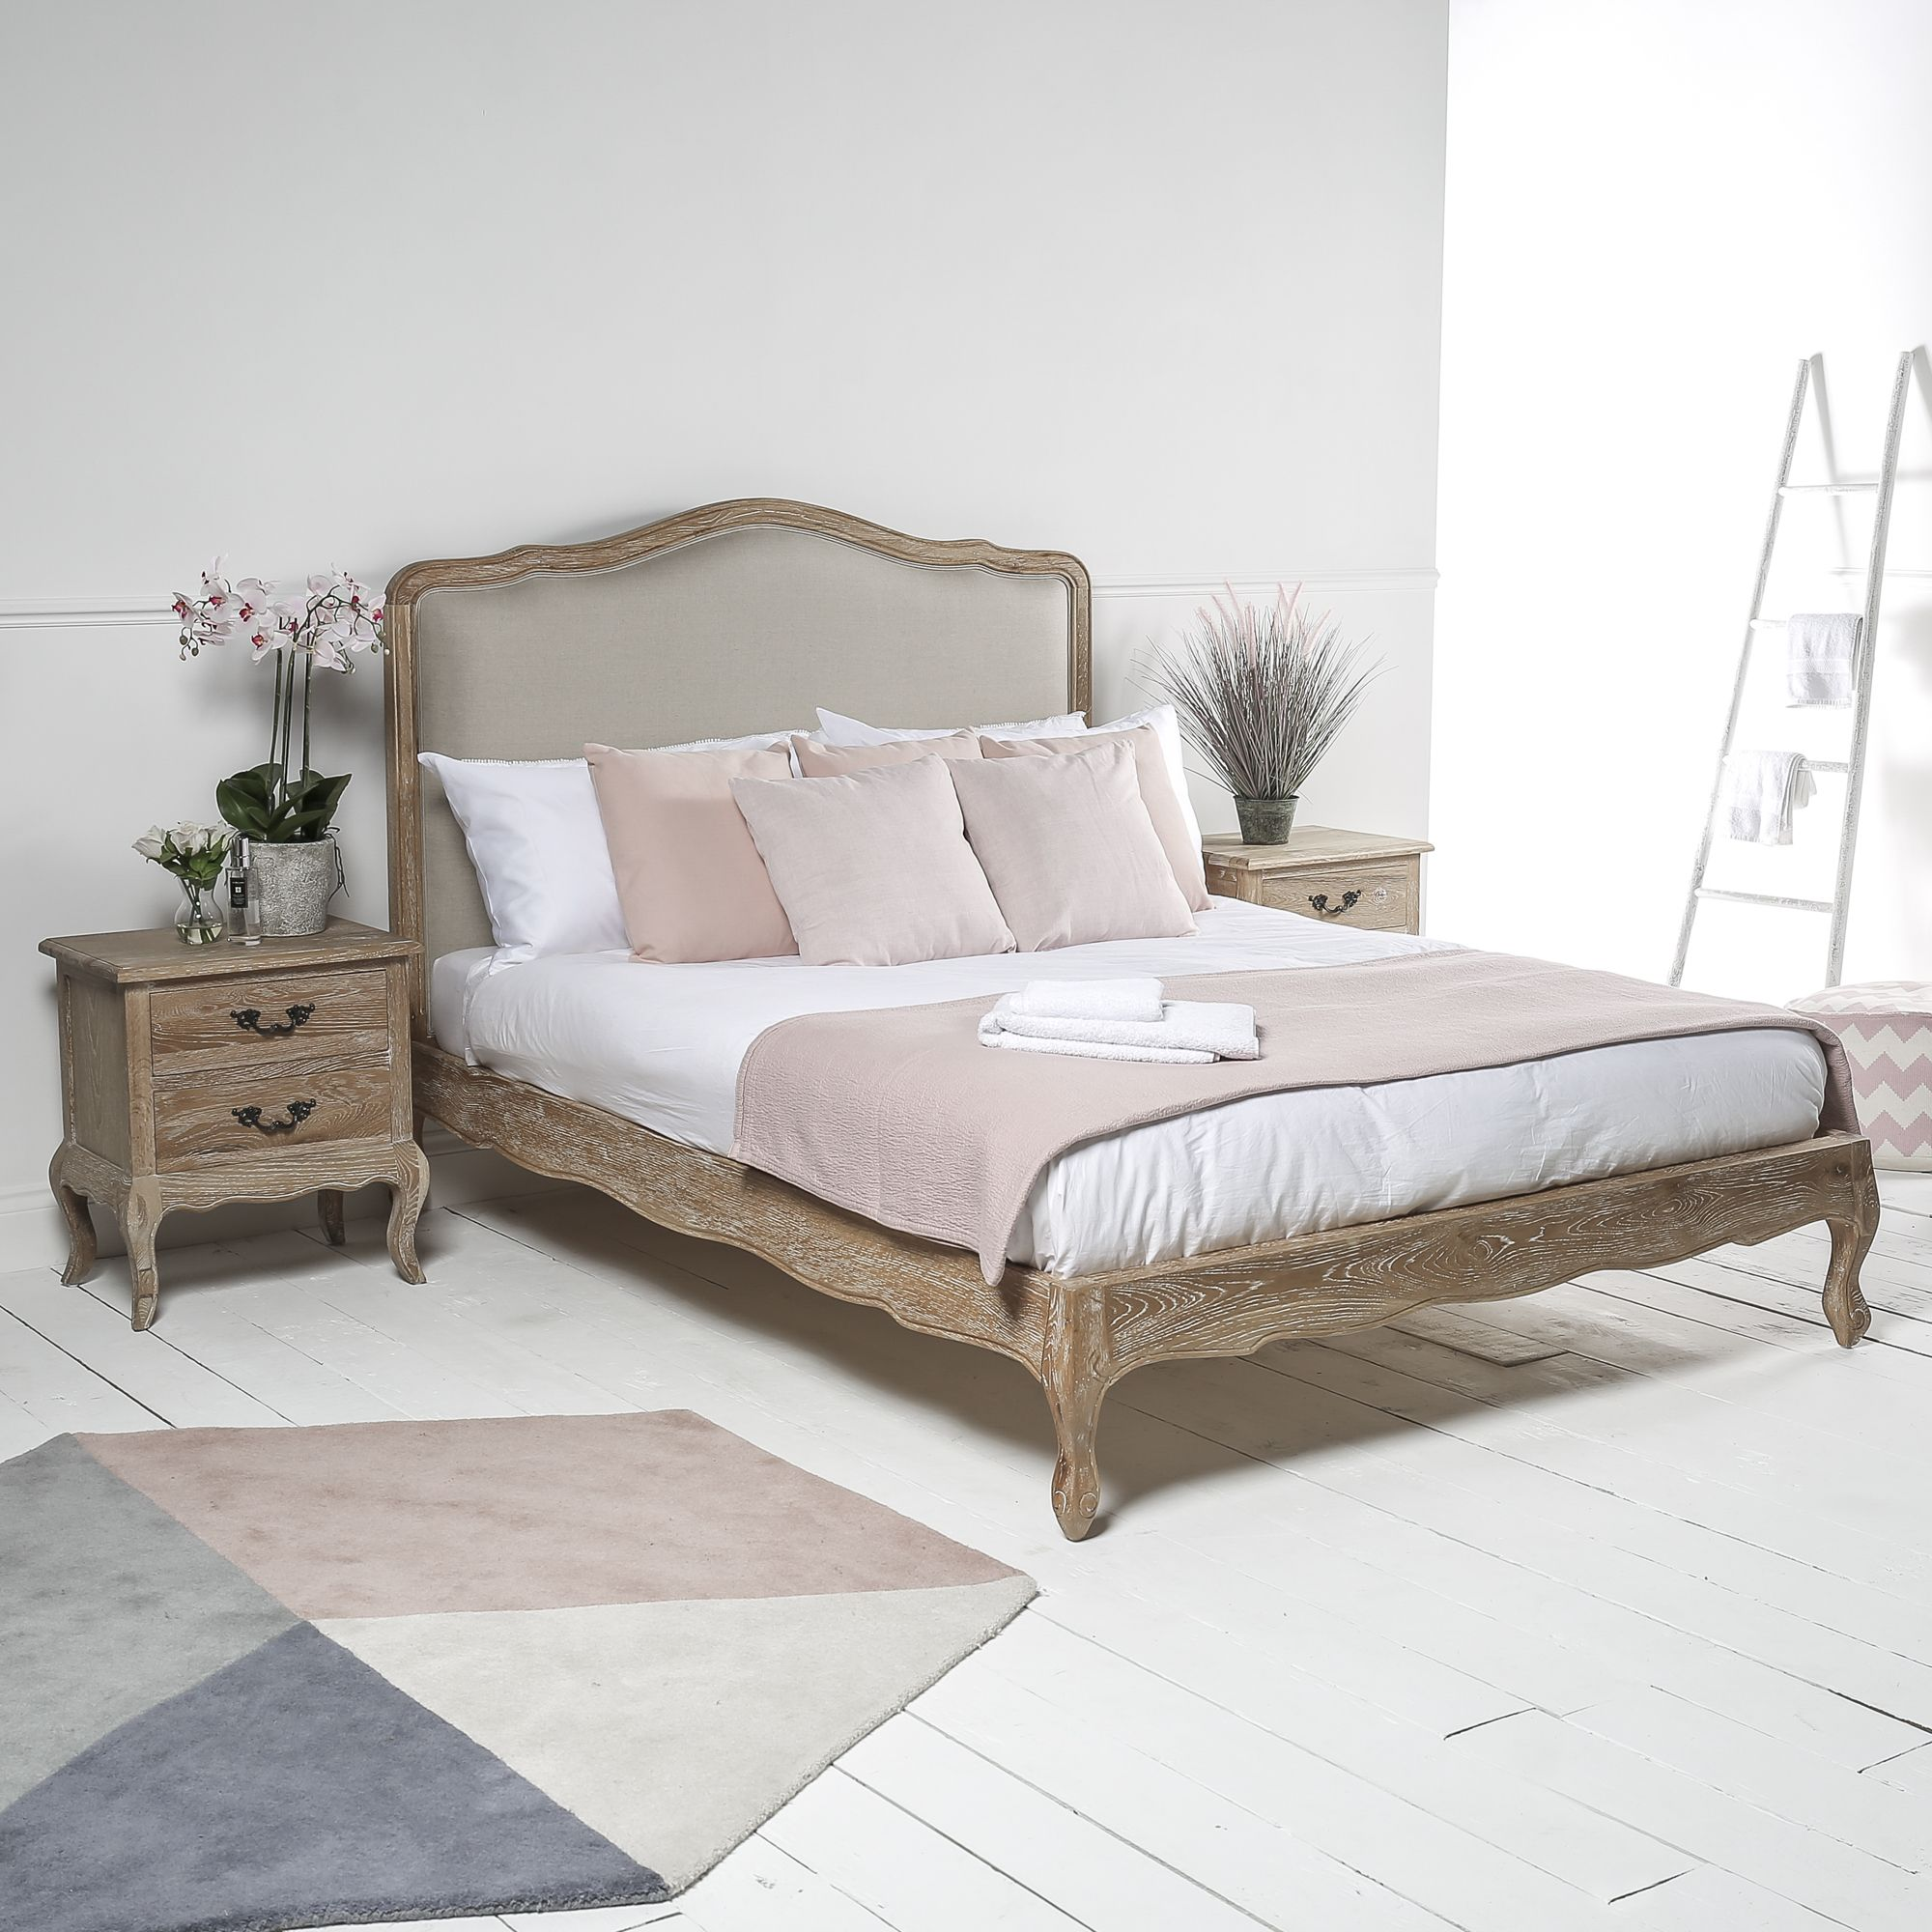 French Weathered Limed Oak Upholstered Low Foot Board Bed Super